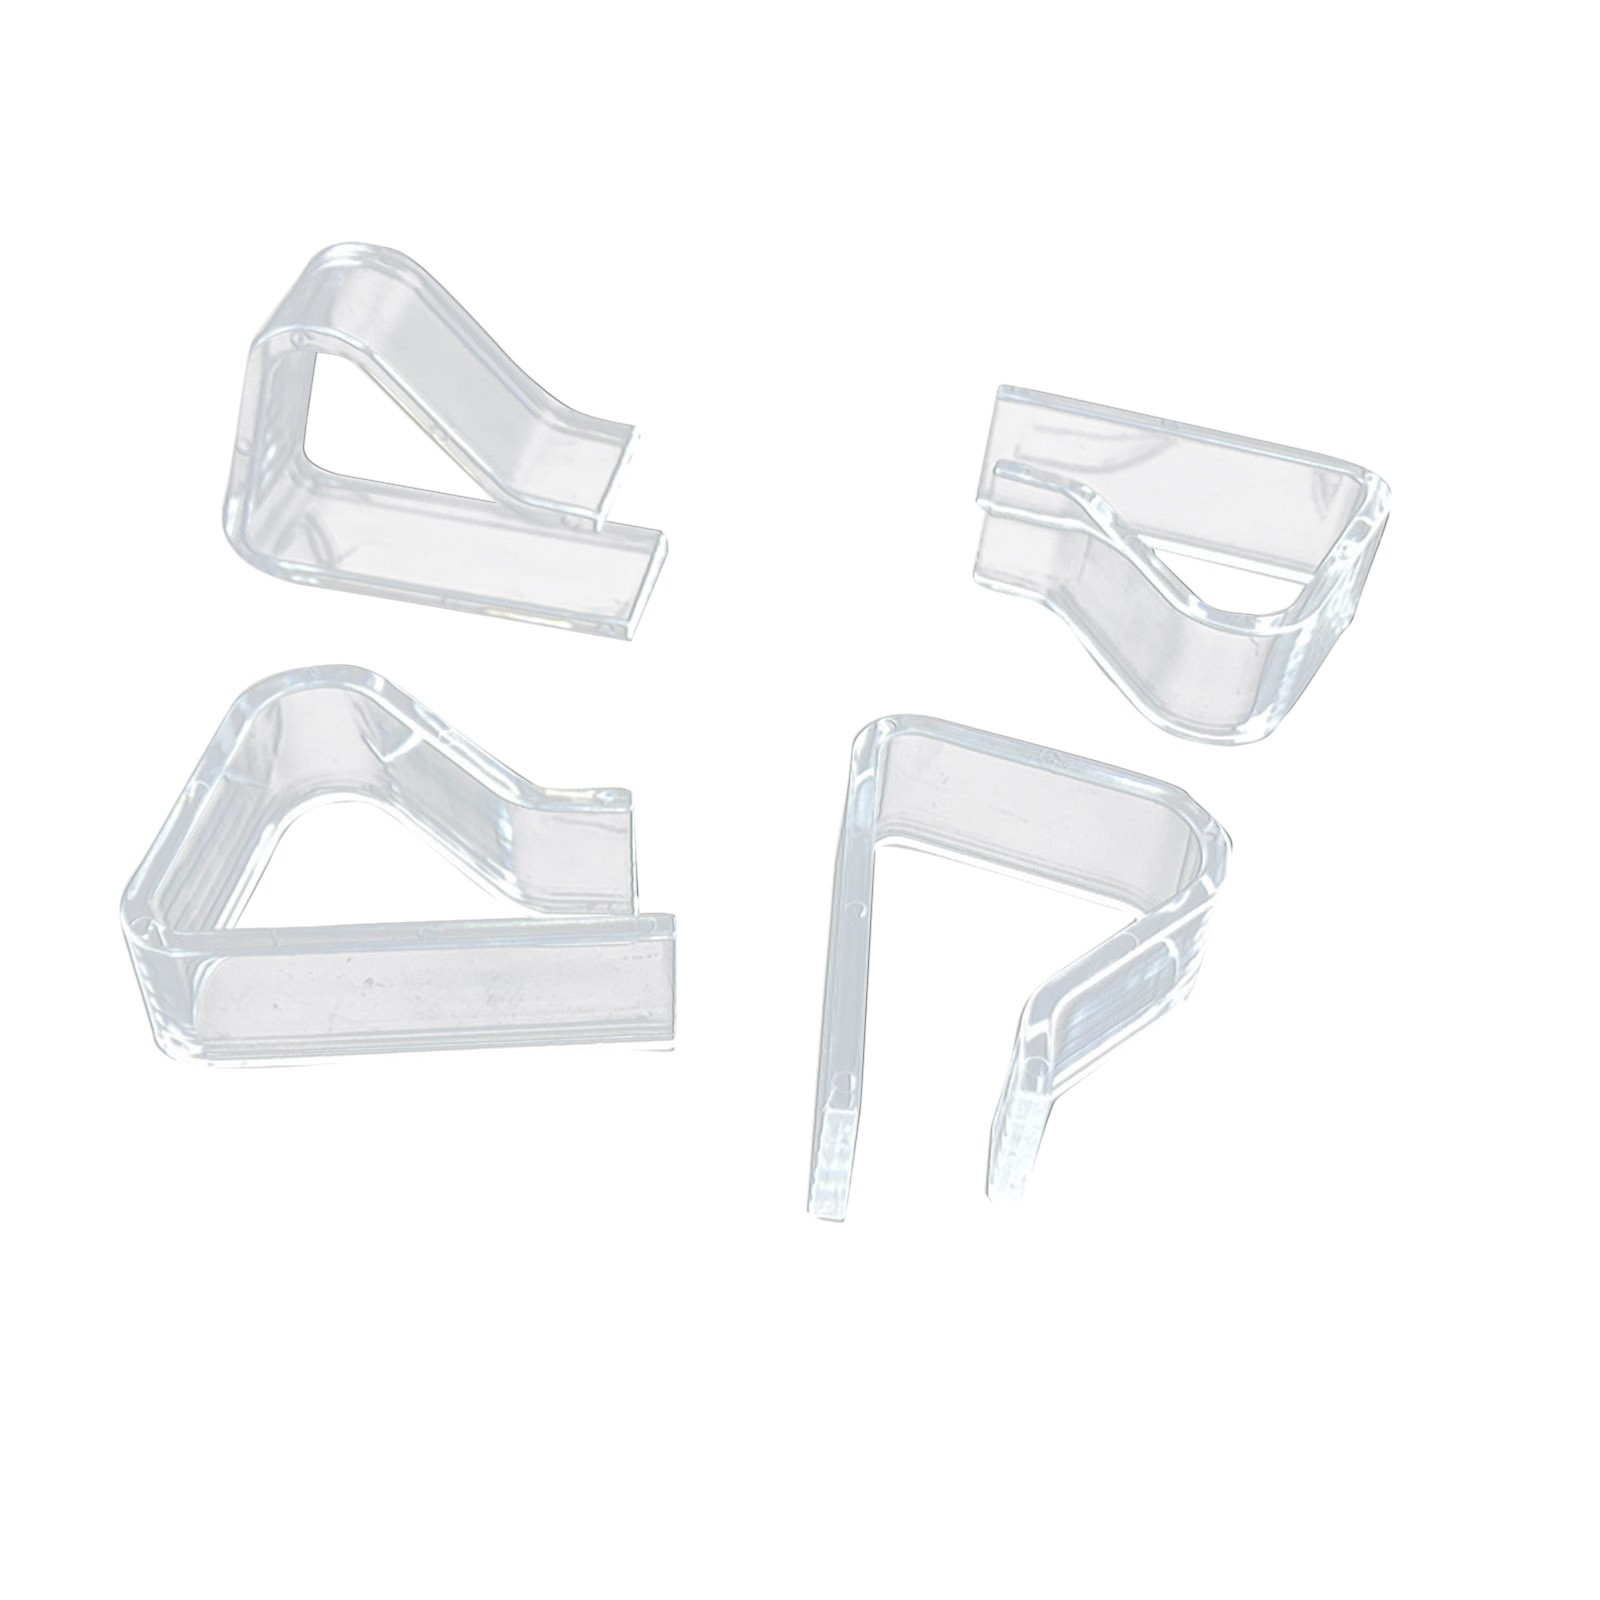 4 Transparent High-quality Plastic Tablecloth Clips Strong Fixing Function Cover Holder Clip Promenade Board Stable Clips#YL10